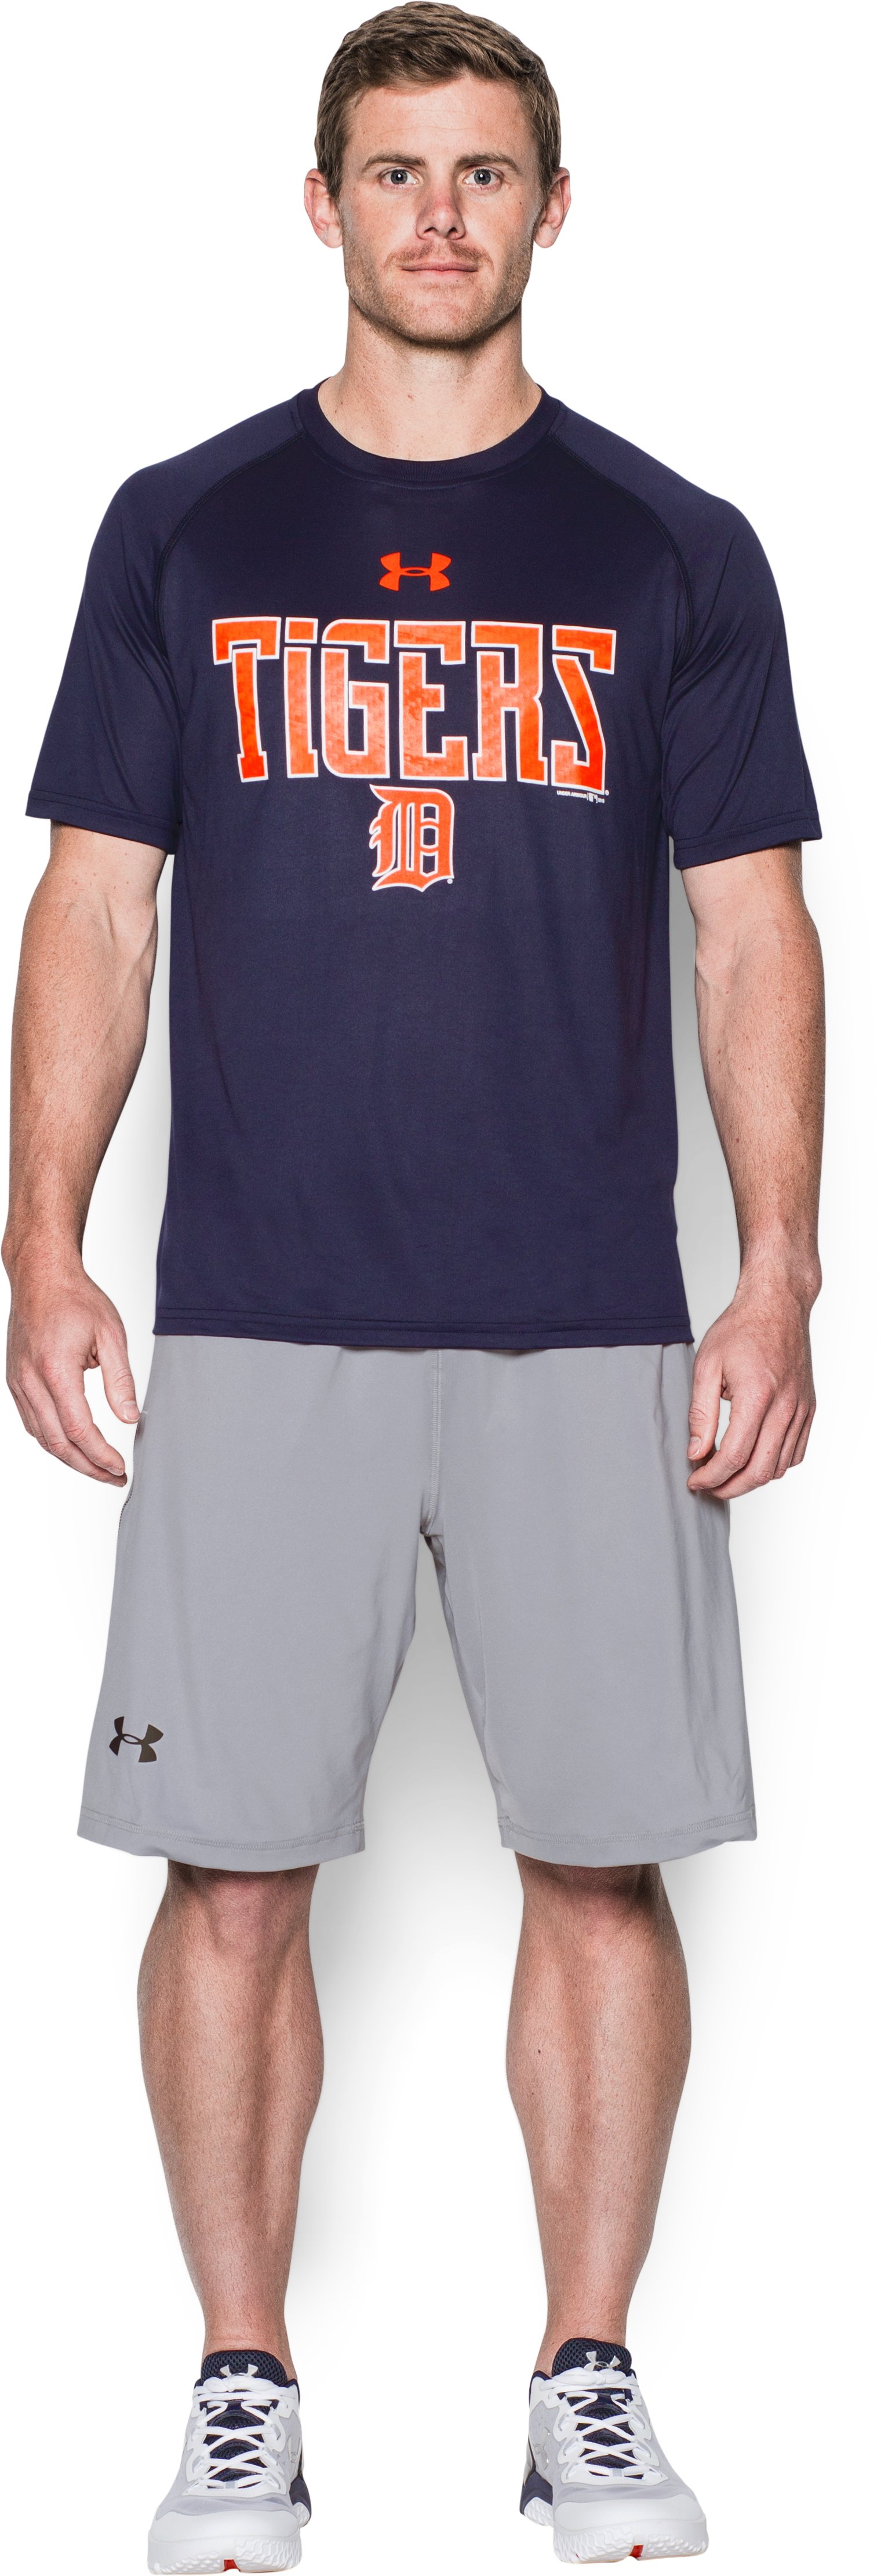 Men's Detroit Tigers Team Tech™ T-Shirt, Midnight Navy